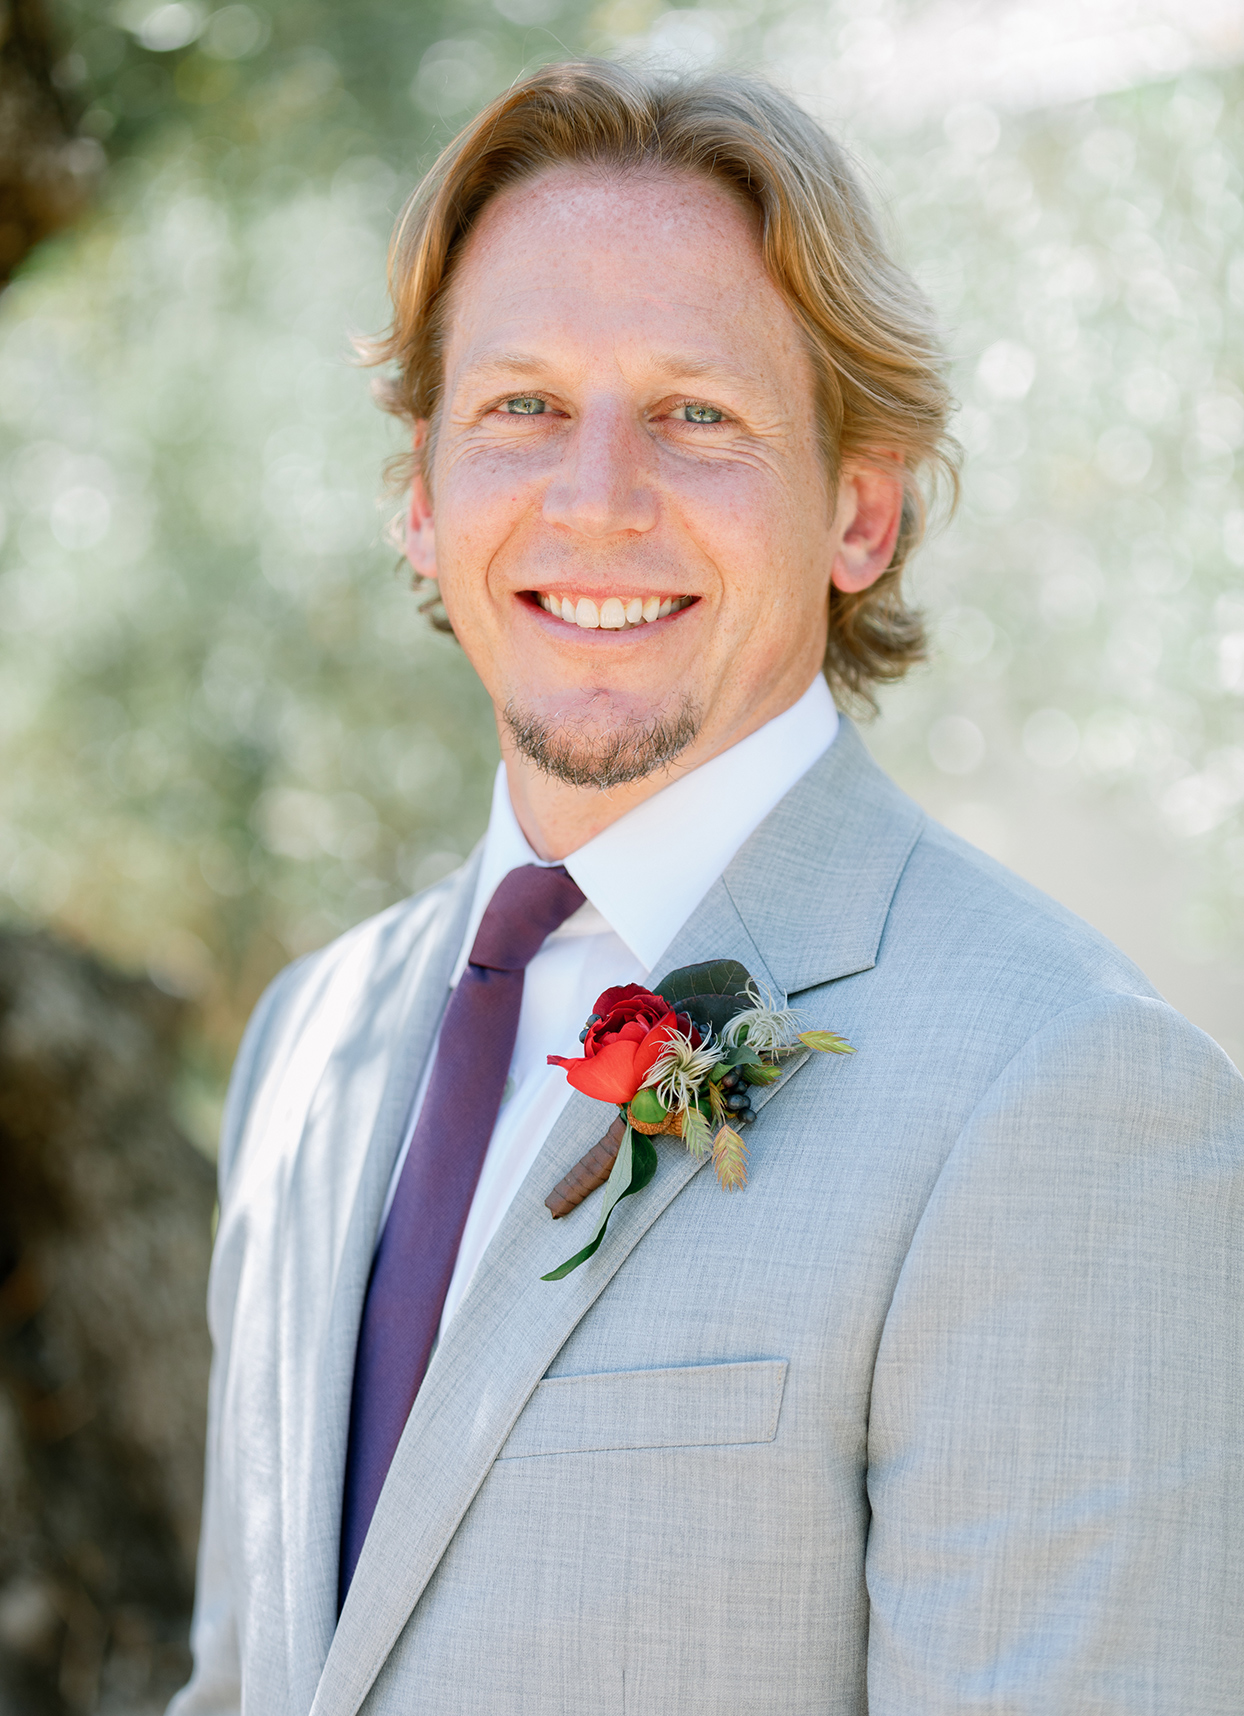 groom in light gray suit with fall boutonniere